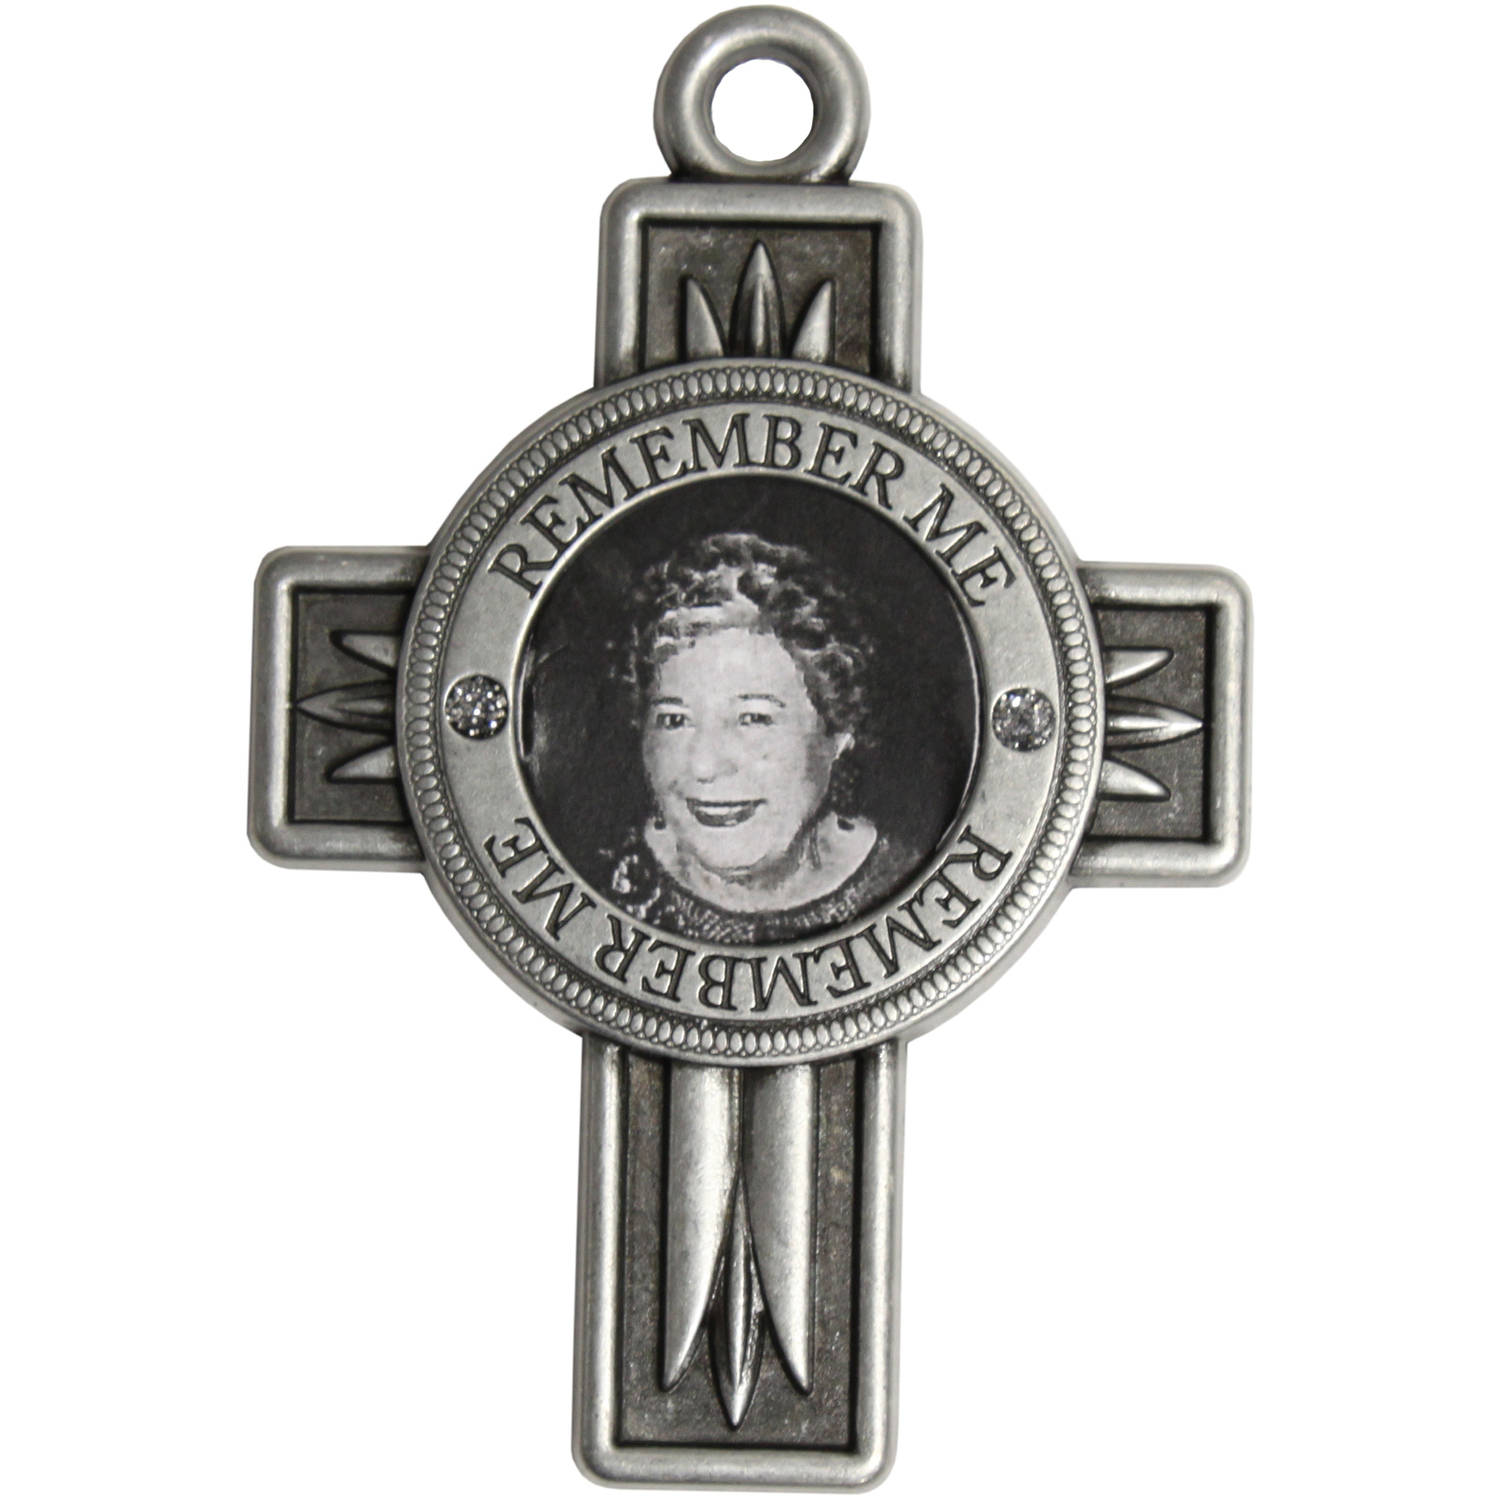 Pewter Remembrance Cross Ornament